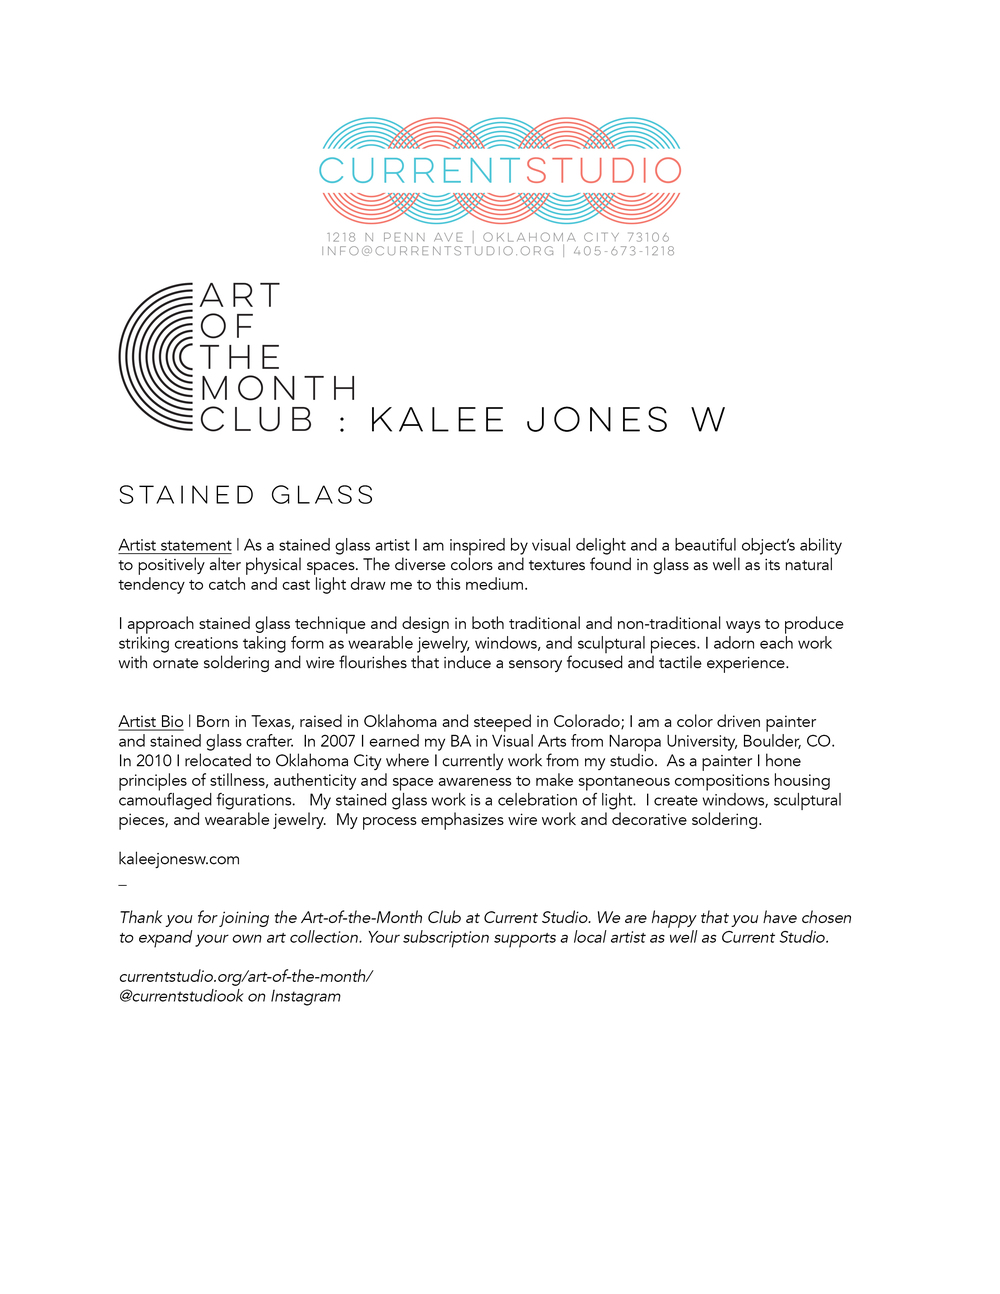 art of the month artist sheet - kalee jones w.jpg